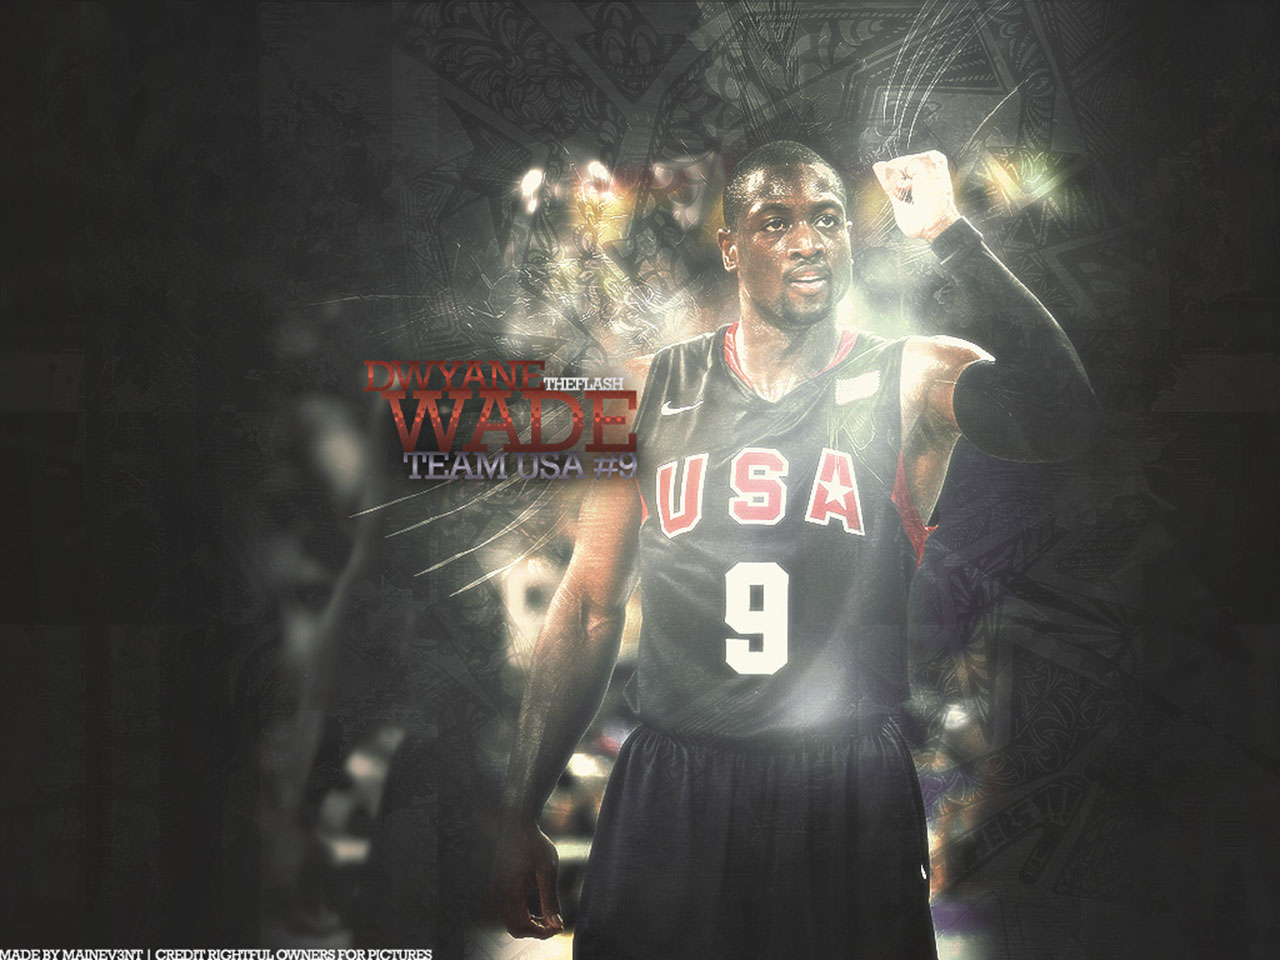 Dwyane Wade Wallpaper Big Fan of NBA   Daily Update 1280x960